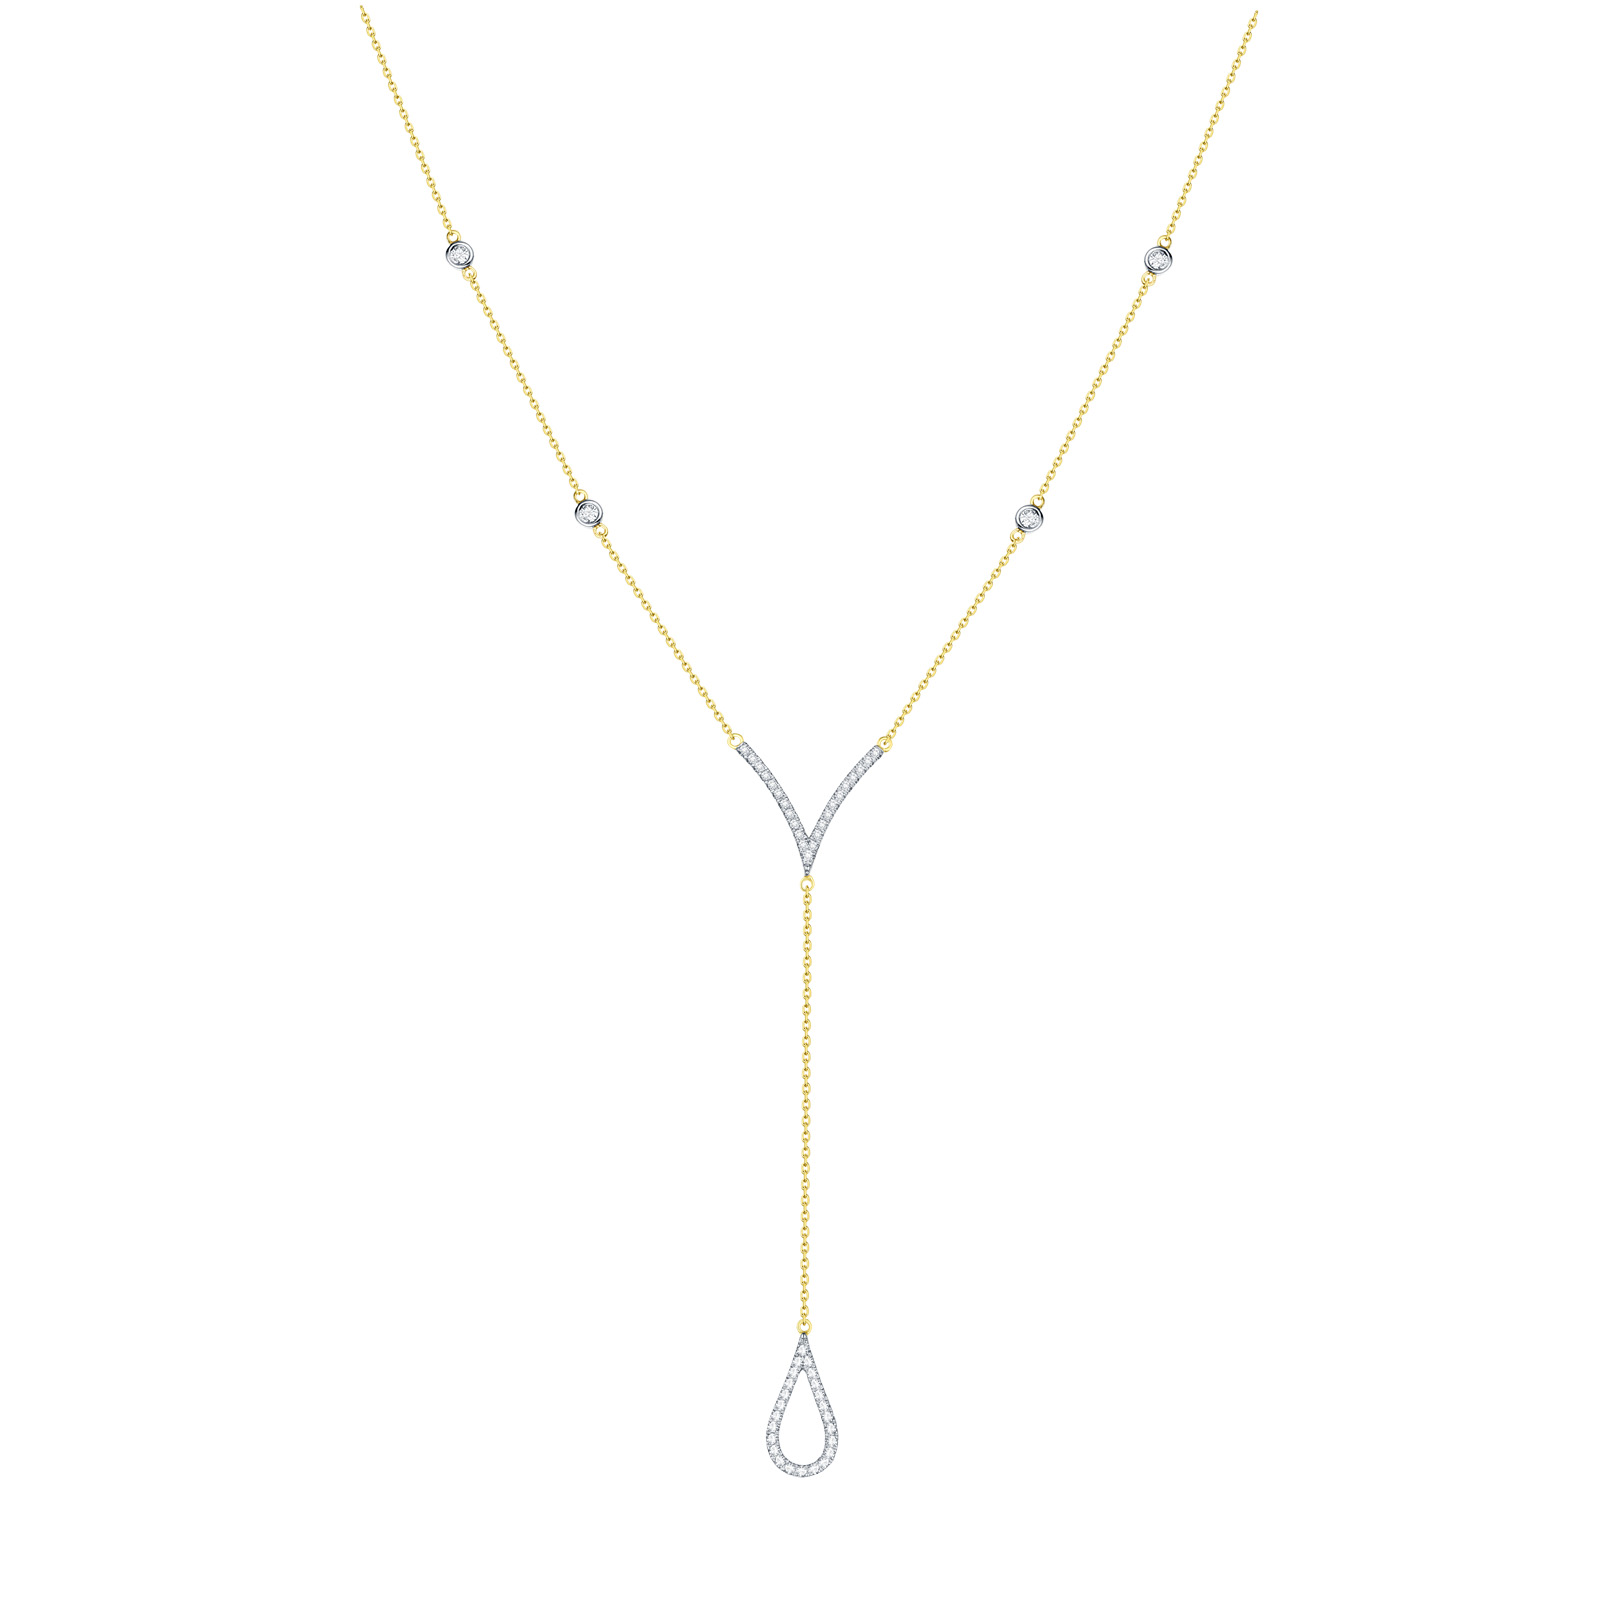 NL25997WHT – 14K Yellow Gold Diamond Necklace, 0.18 TCW